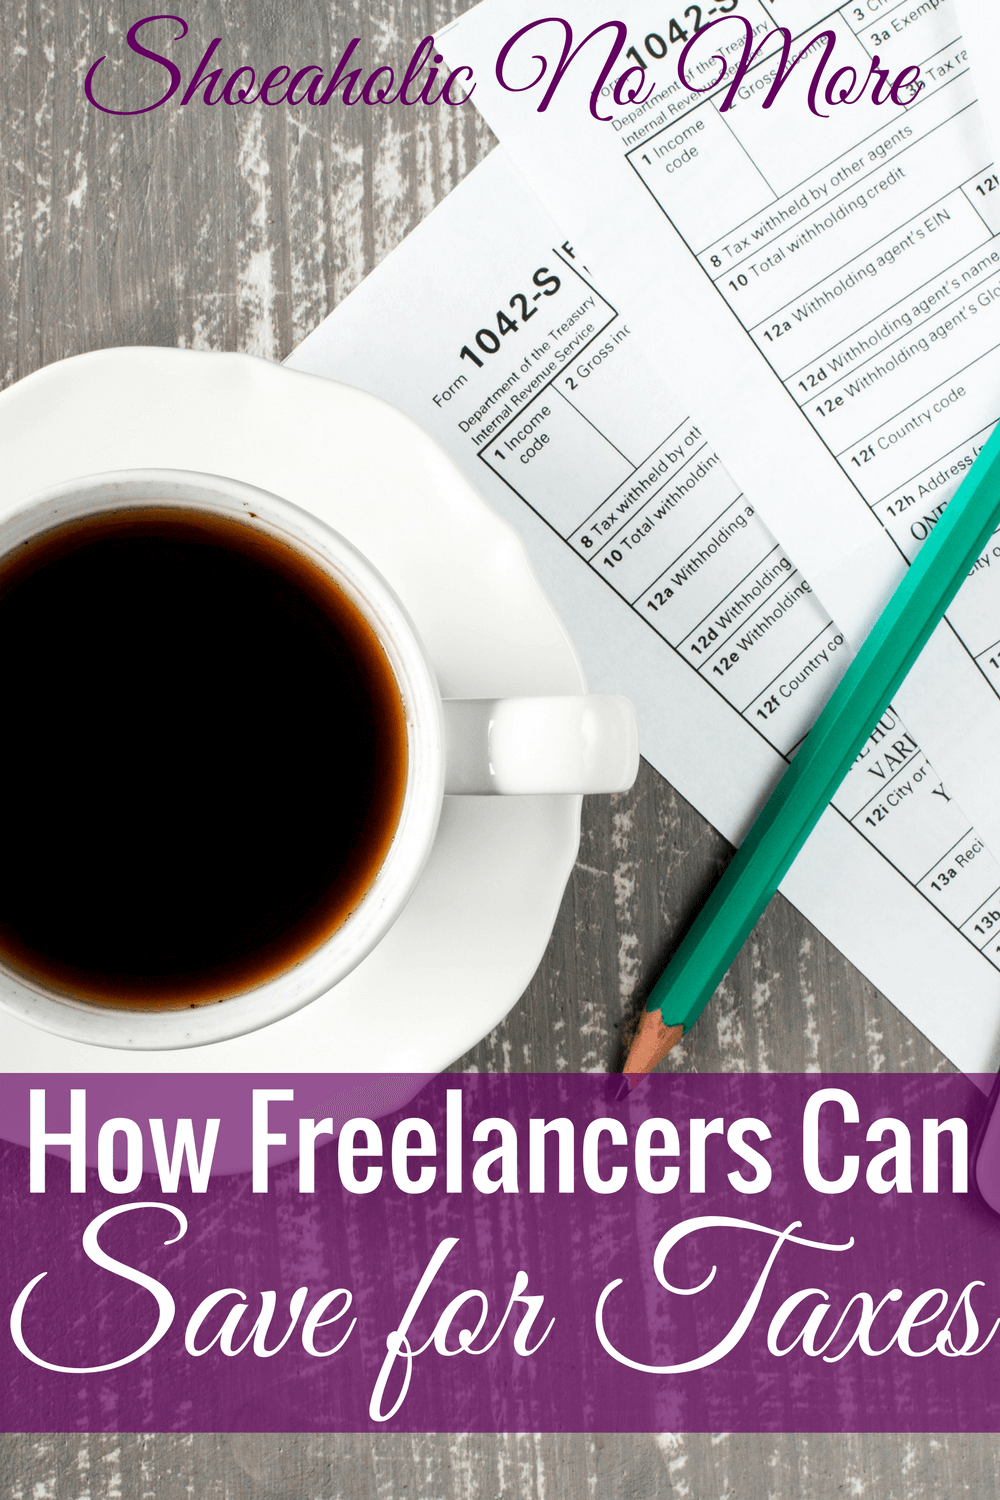 If you're self employed, you need to be saving for taxes. Here's how freelancers can save for taxes.